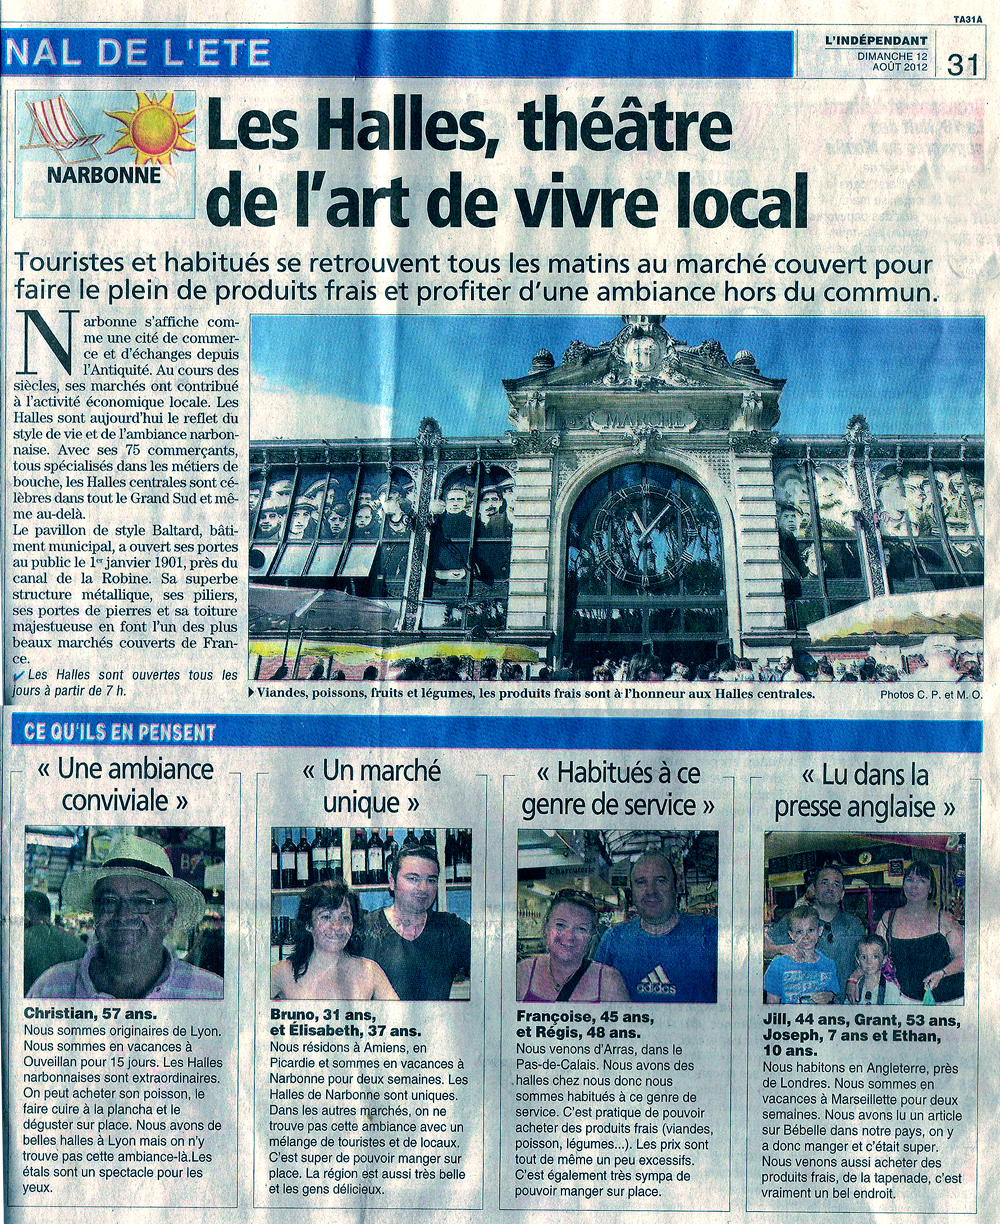 les_halles_de_narbonne_art_de_vivre_local_independant-12-08-2012